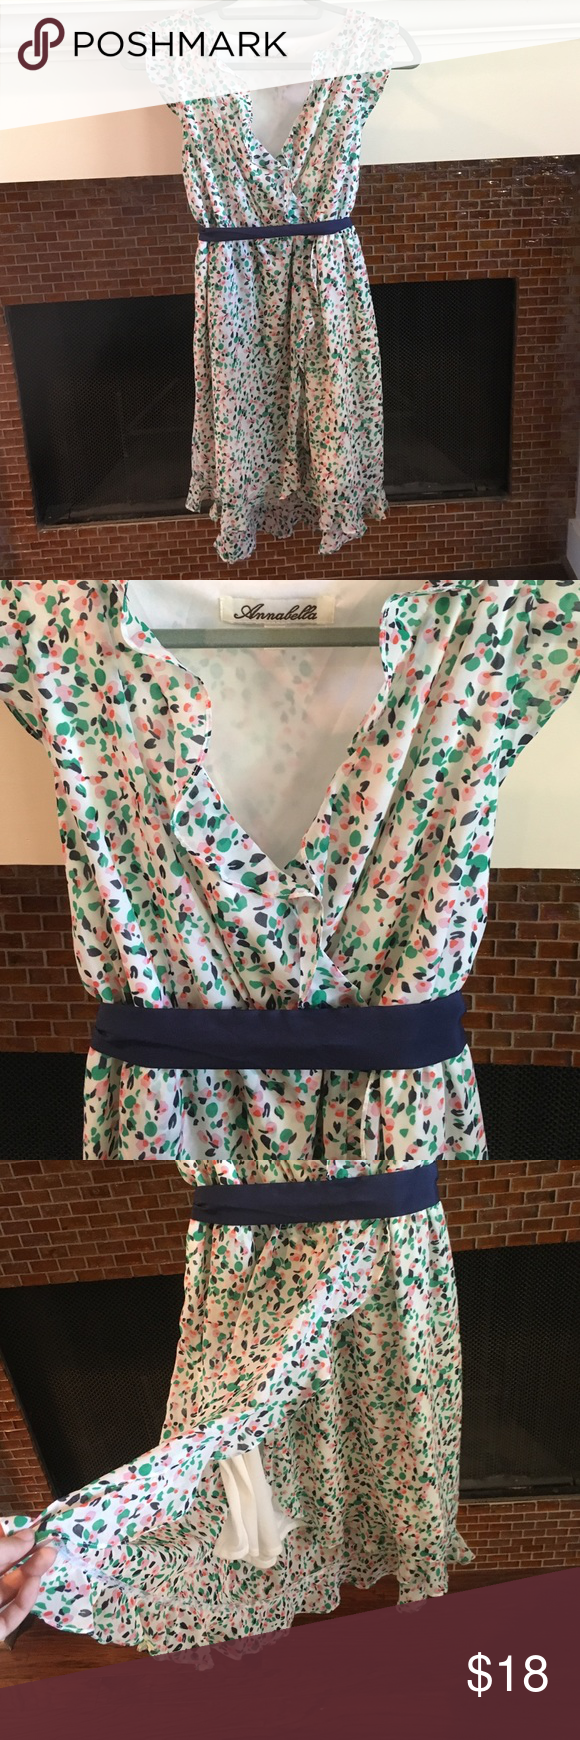 Floral dress! Perfect sumner dress with pink, green, & navy flowers. The navy tie can be tied in the front or back depending on your preference! Annabella Dresses